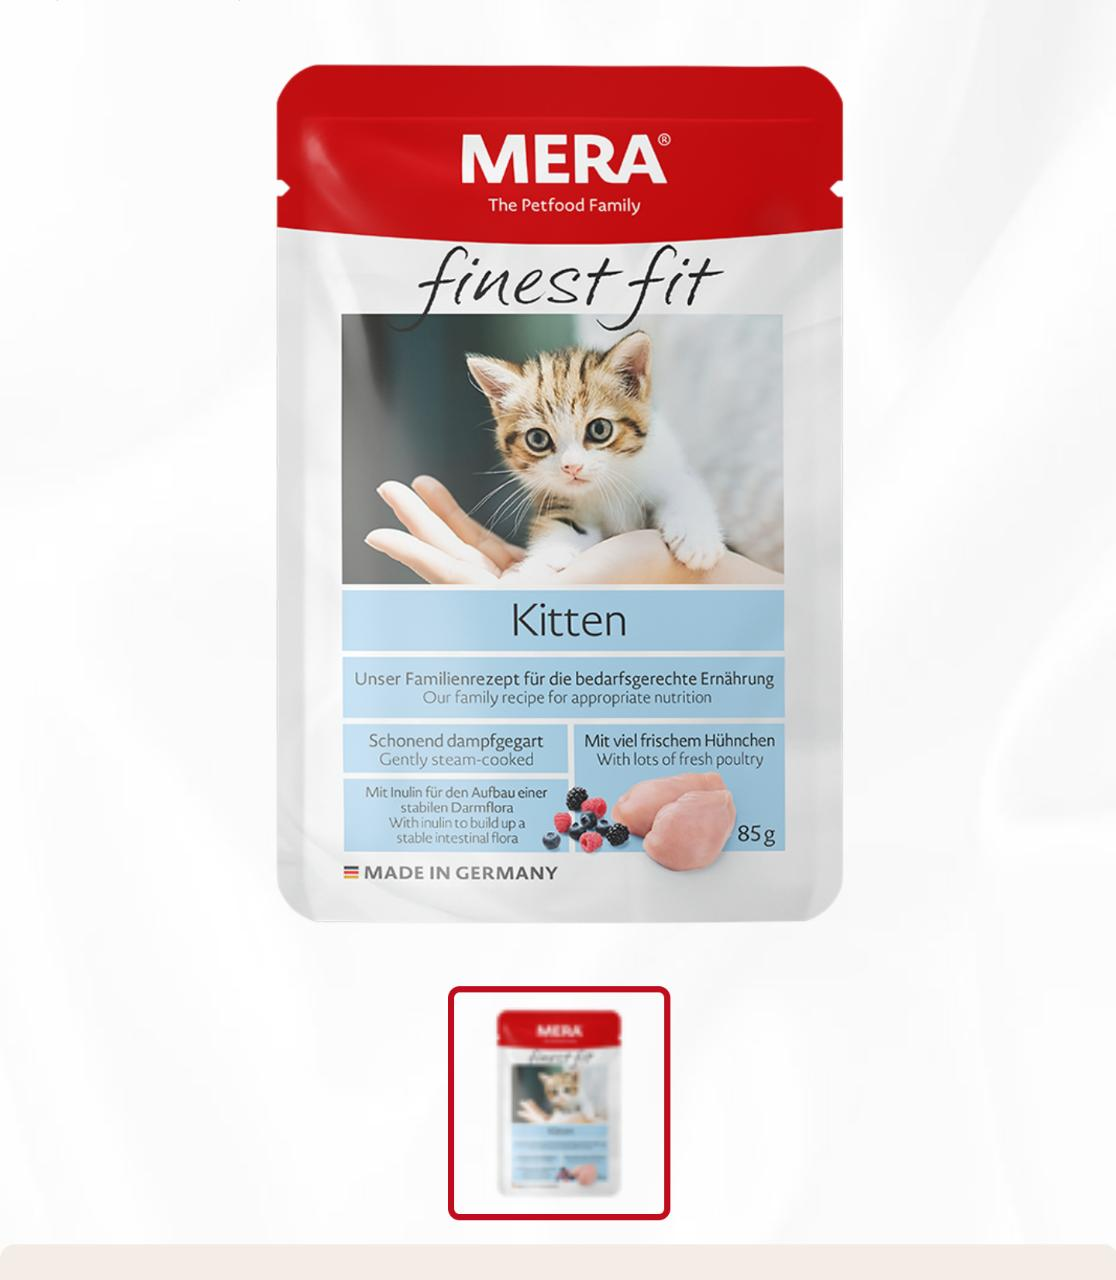 Mera Finest Fit Creamy bite ( Cat Snack ) 80g Kitten